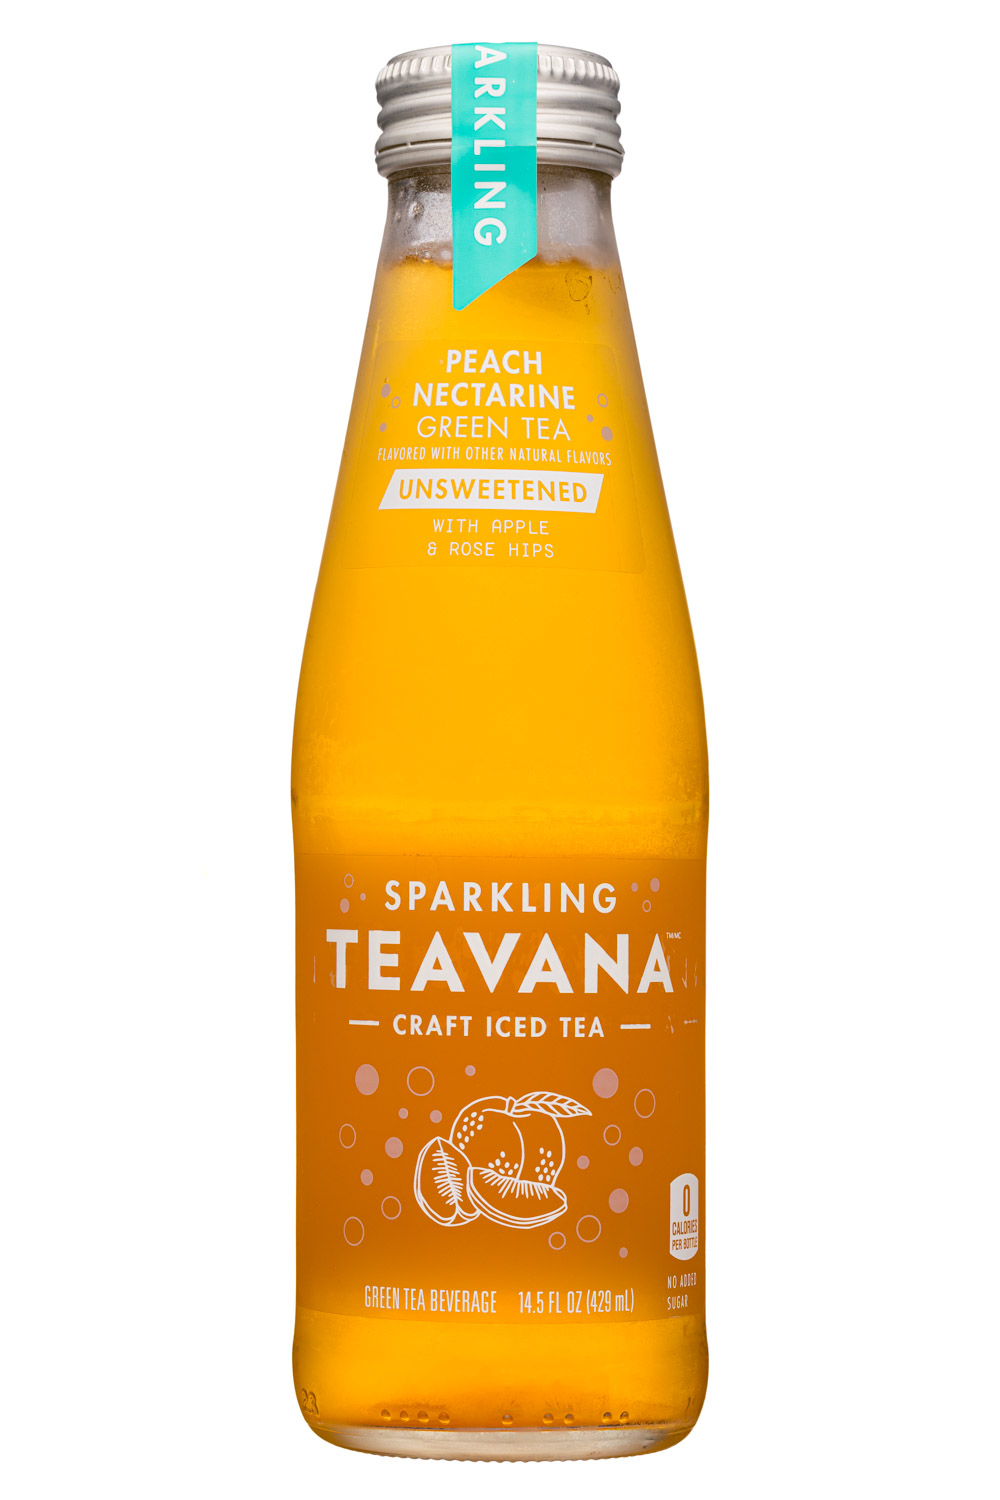 Sparkling Peach Nectarine Green Tea